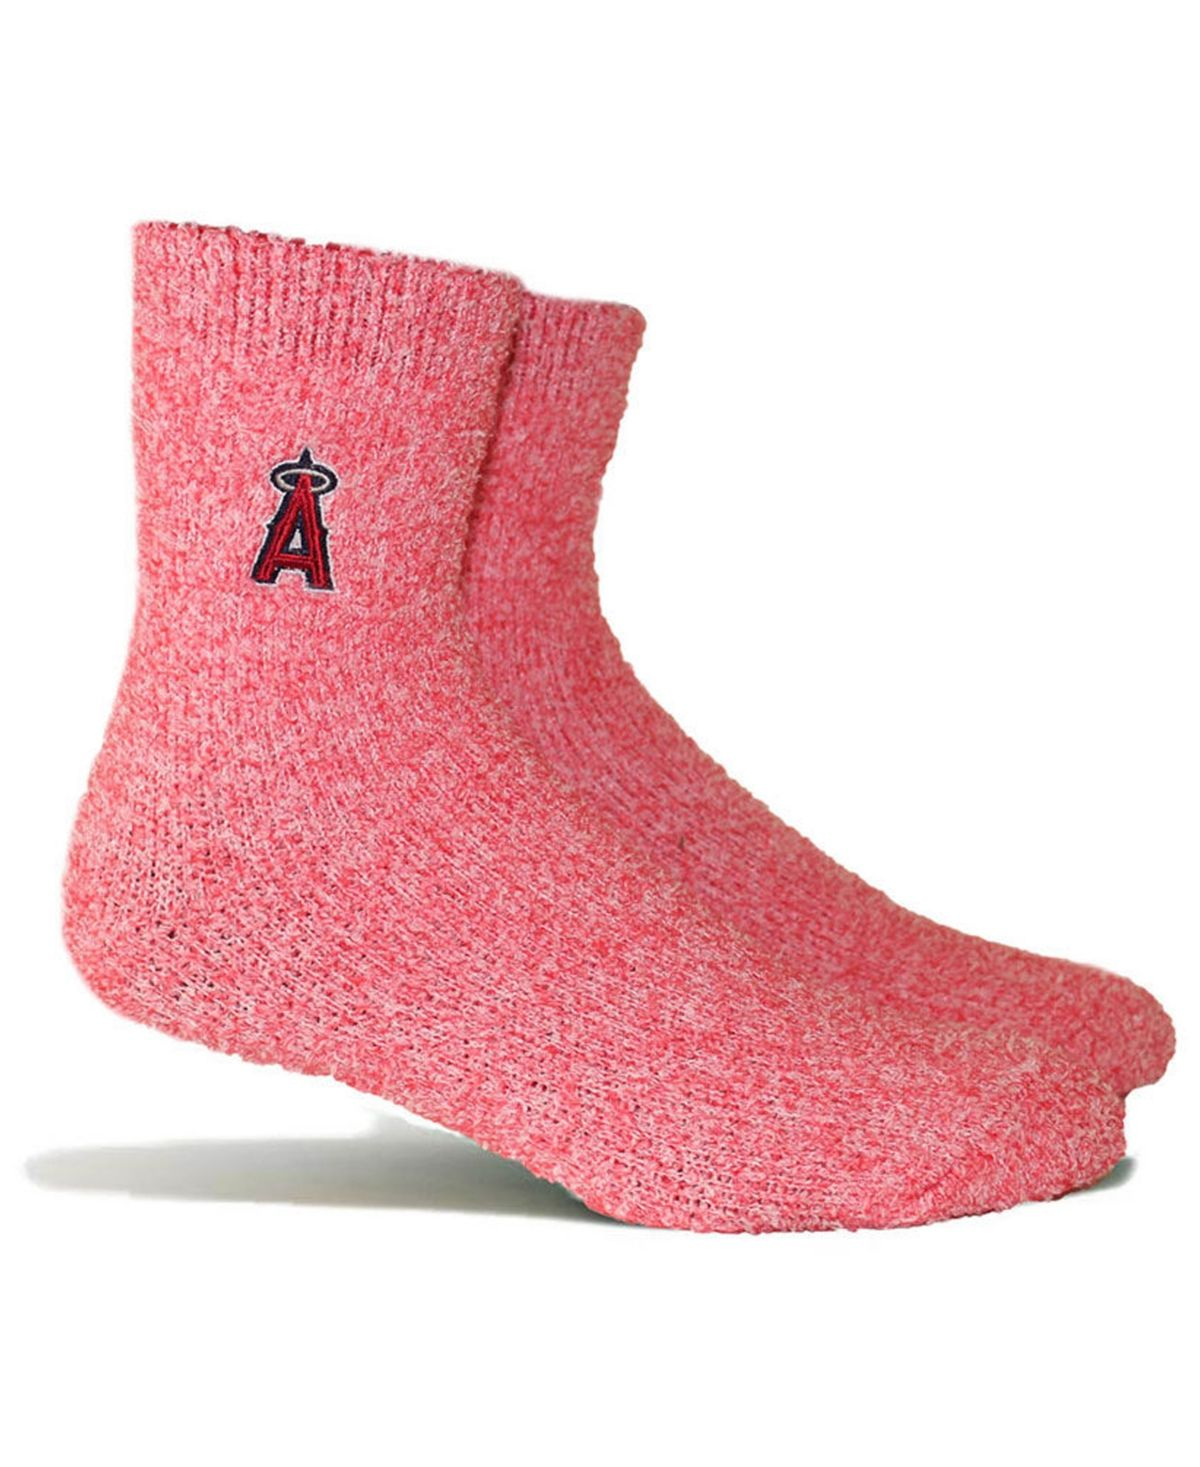 PKWY by Stance Boston Red Sox Crew Socks